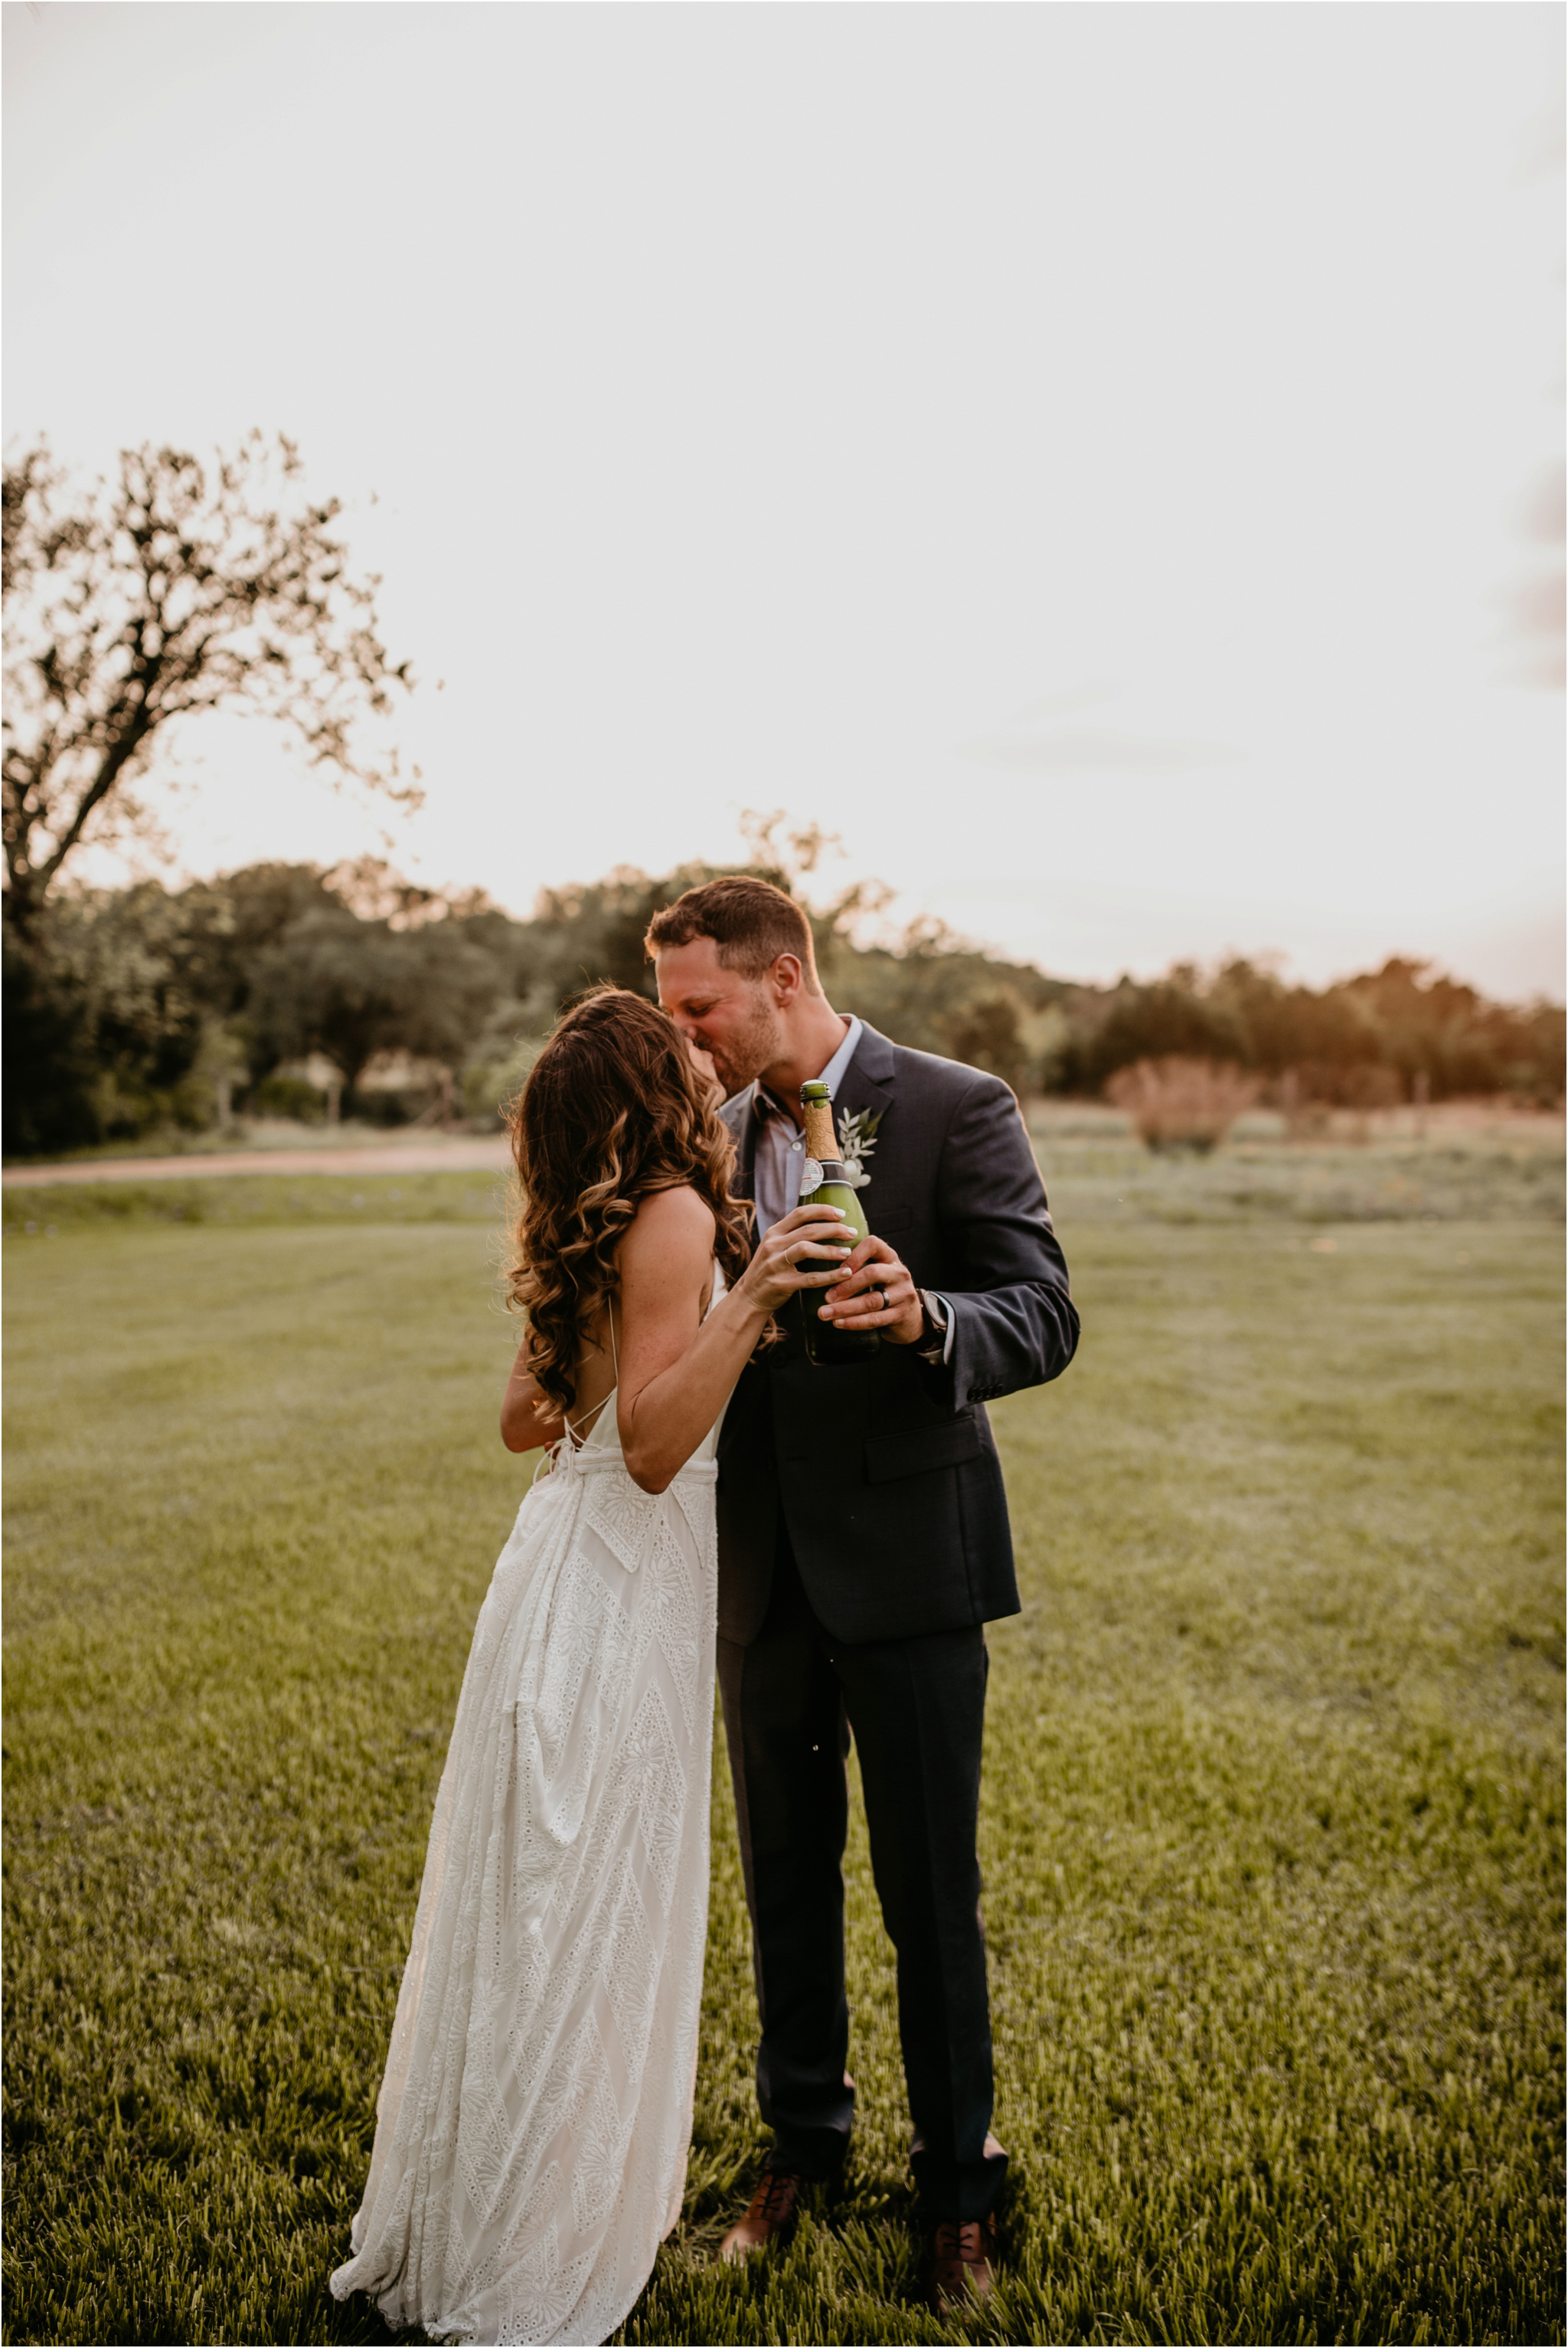 jillian-and-scott-pecan-springs-ranch-texas-and-washington-wedding-photographer-103.jpg